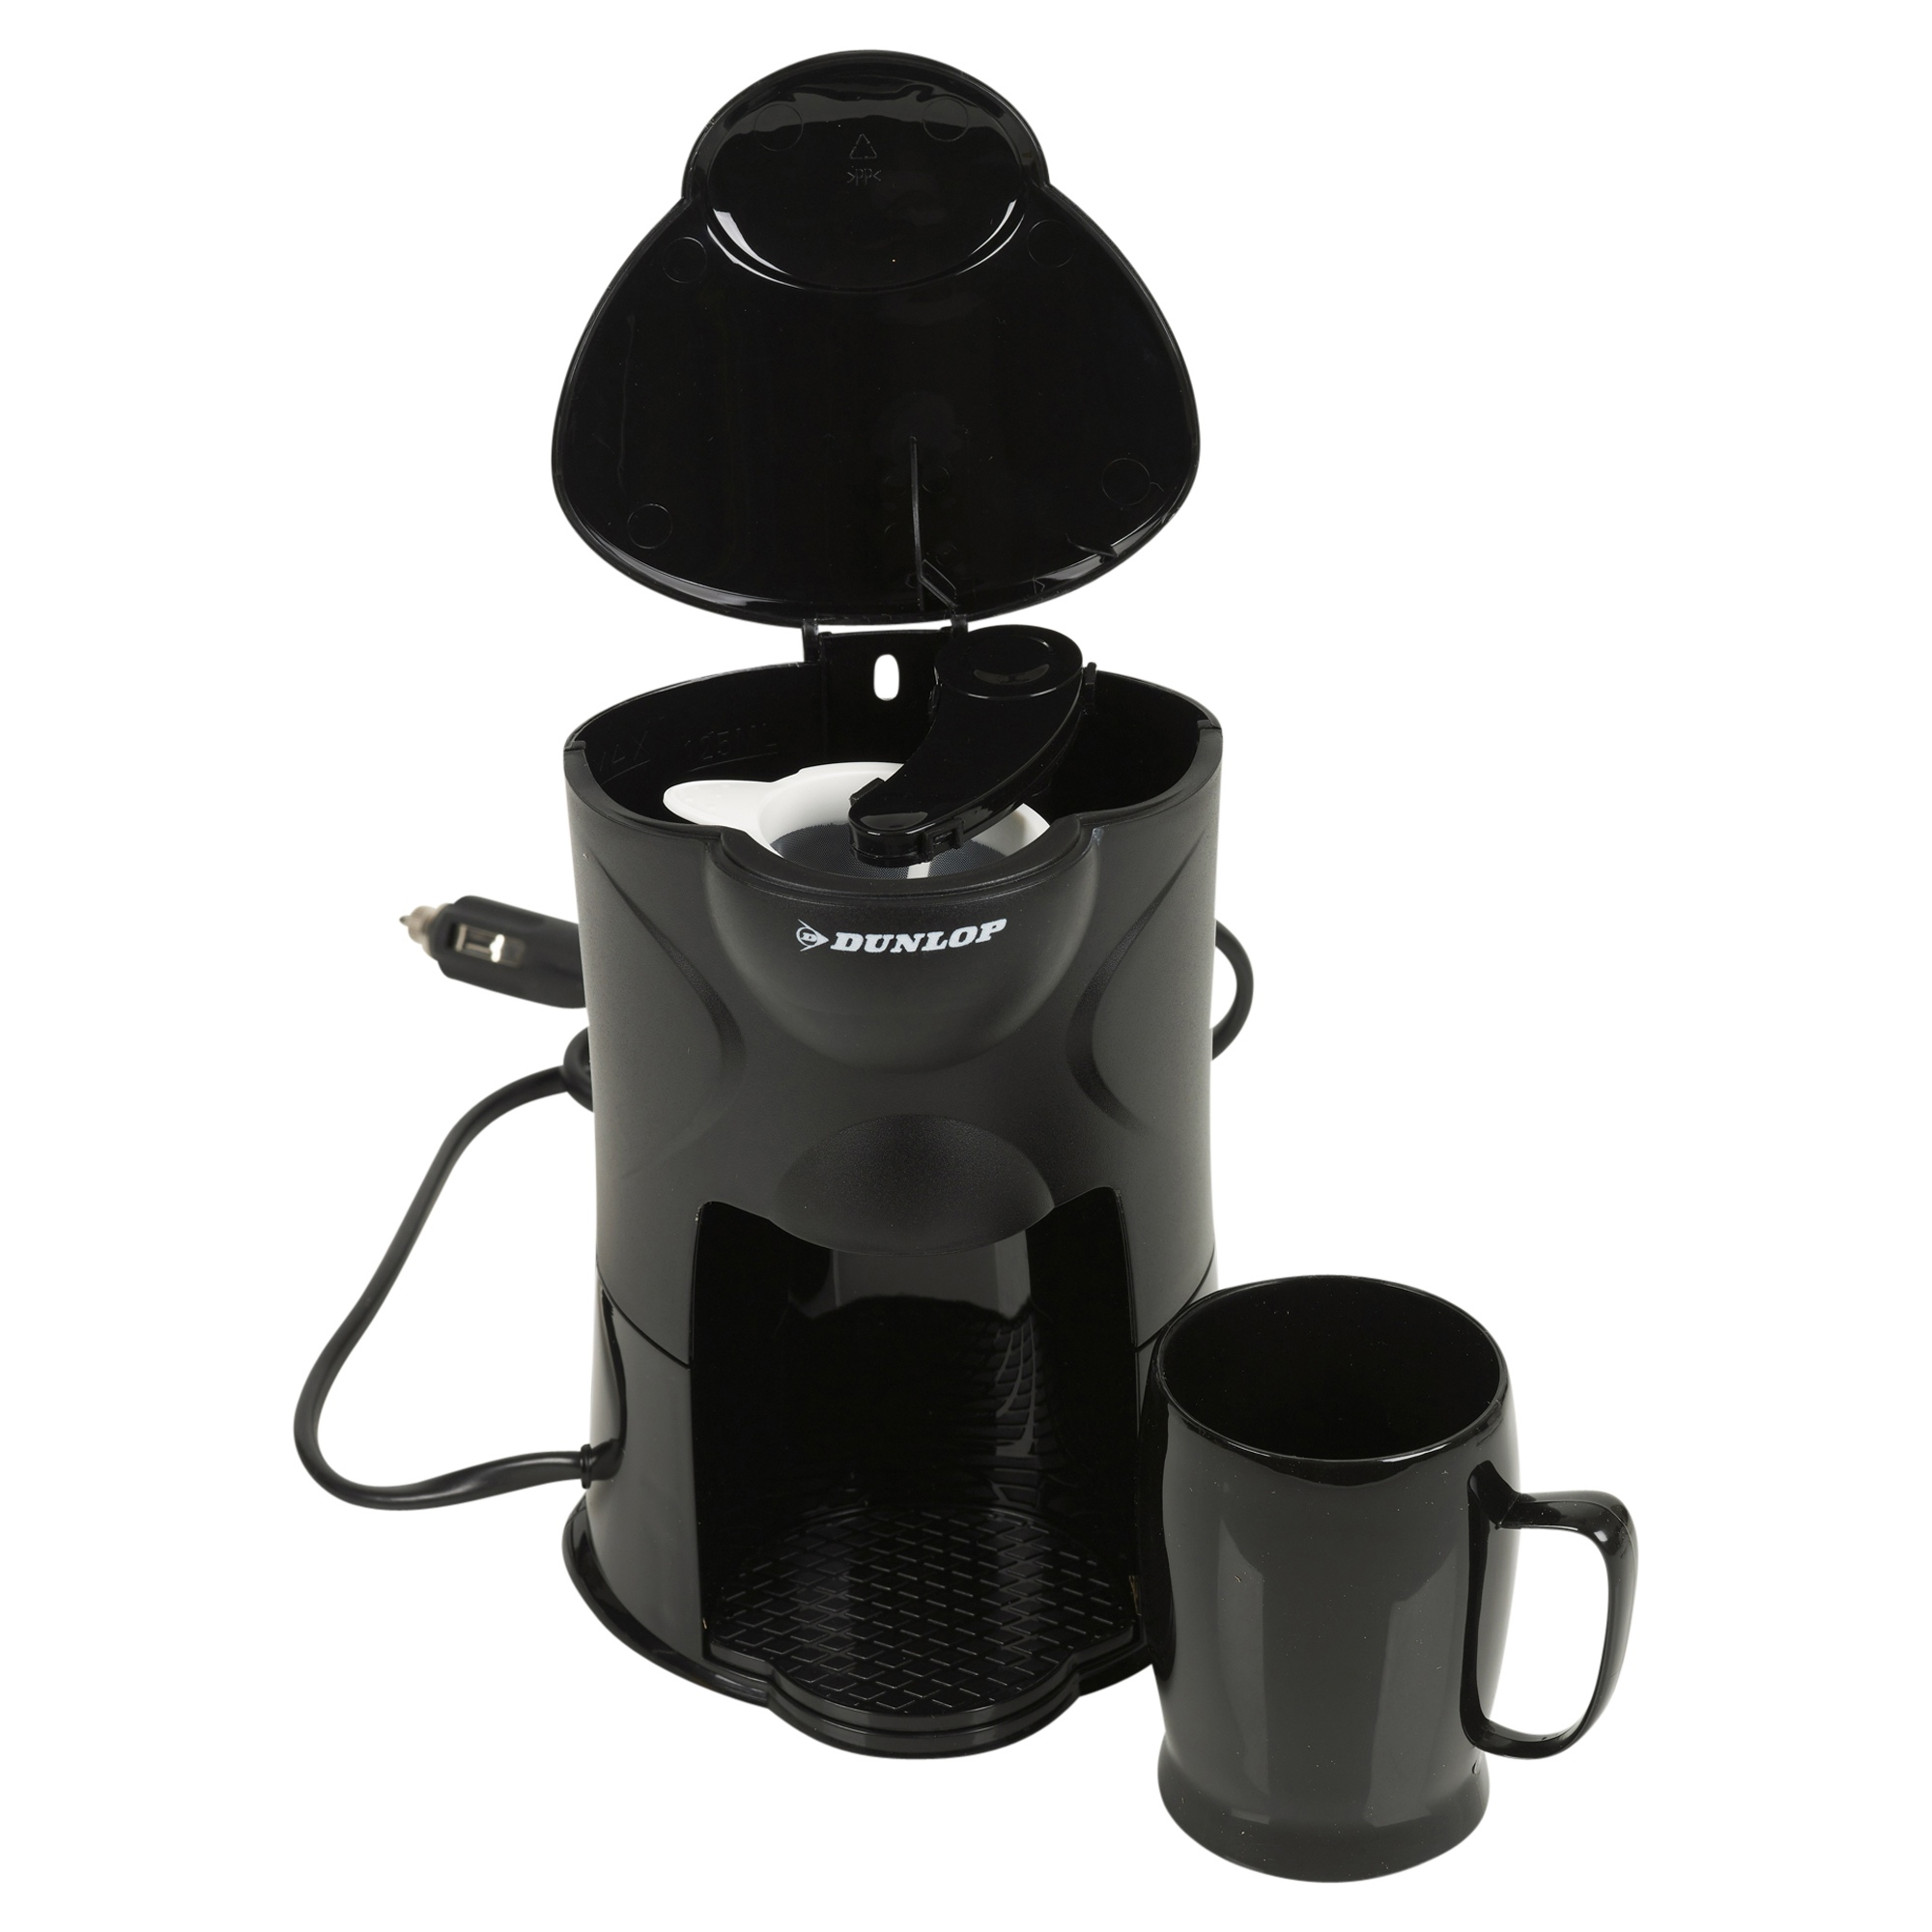 Car Camping Lorry Caravan All Ride 1 One Cup Coffee Maker Machine New Sealed 12v